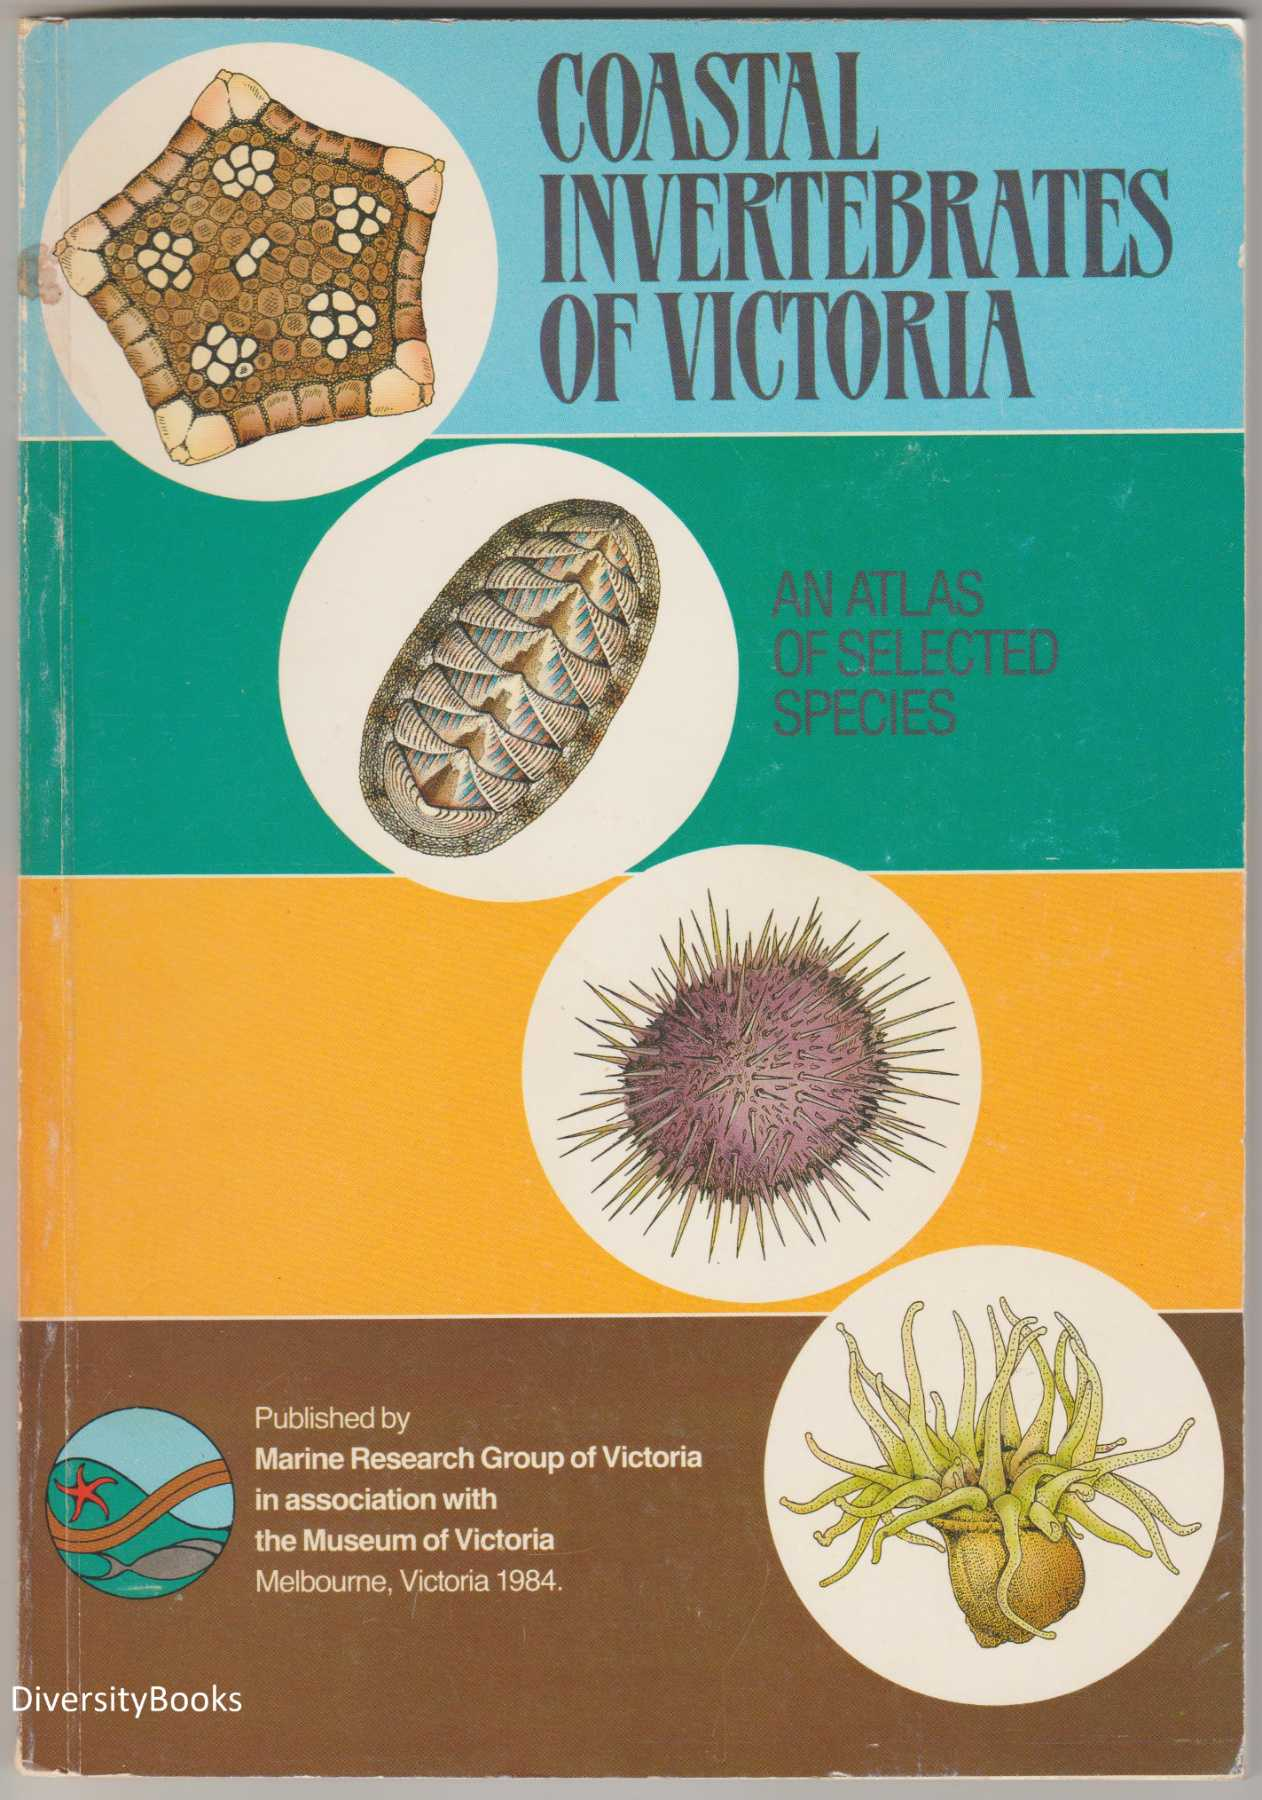 Image for COASTAL INVERTEBRATES OF VICTORIA: An Atlas of Selected Species